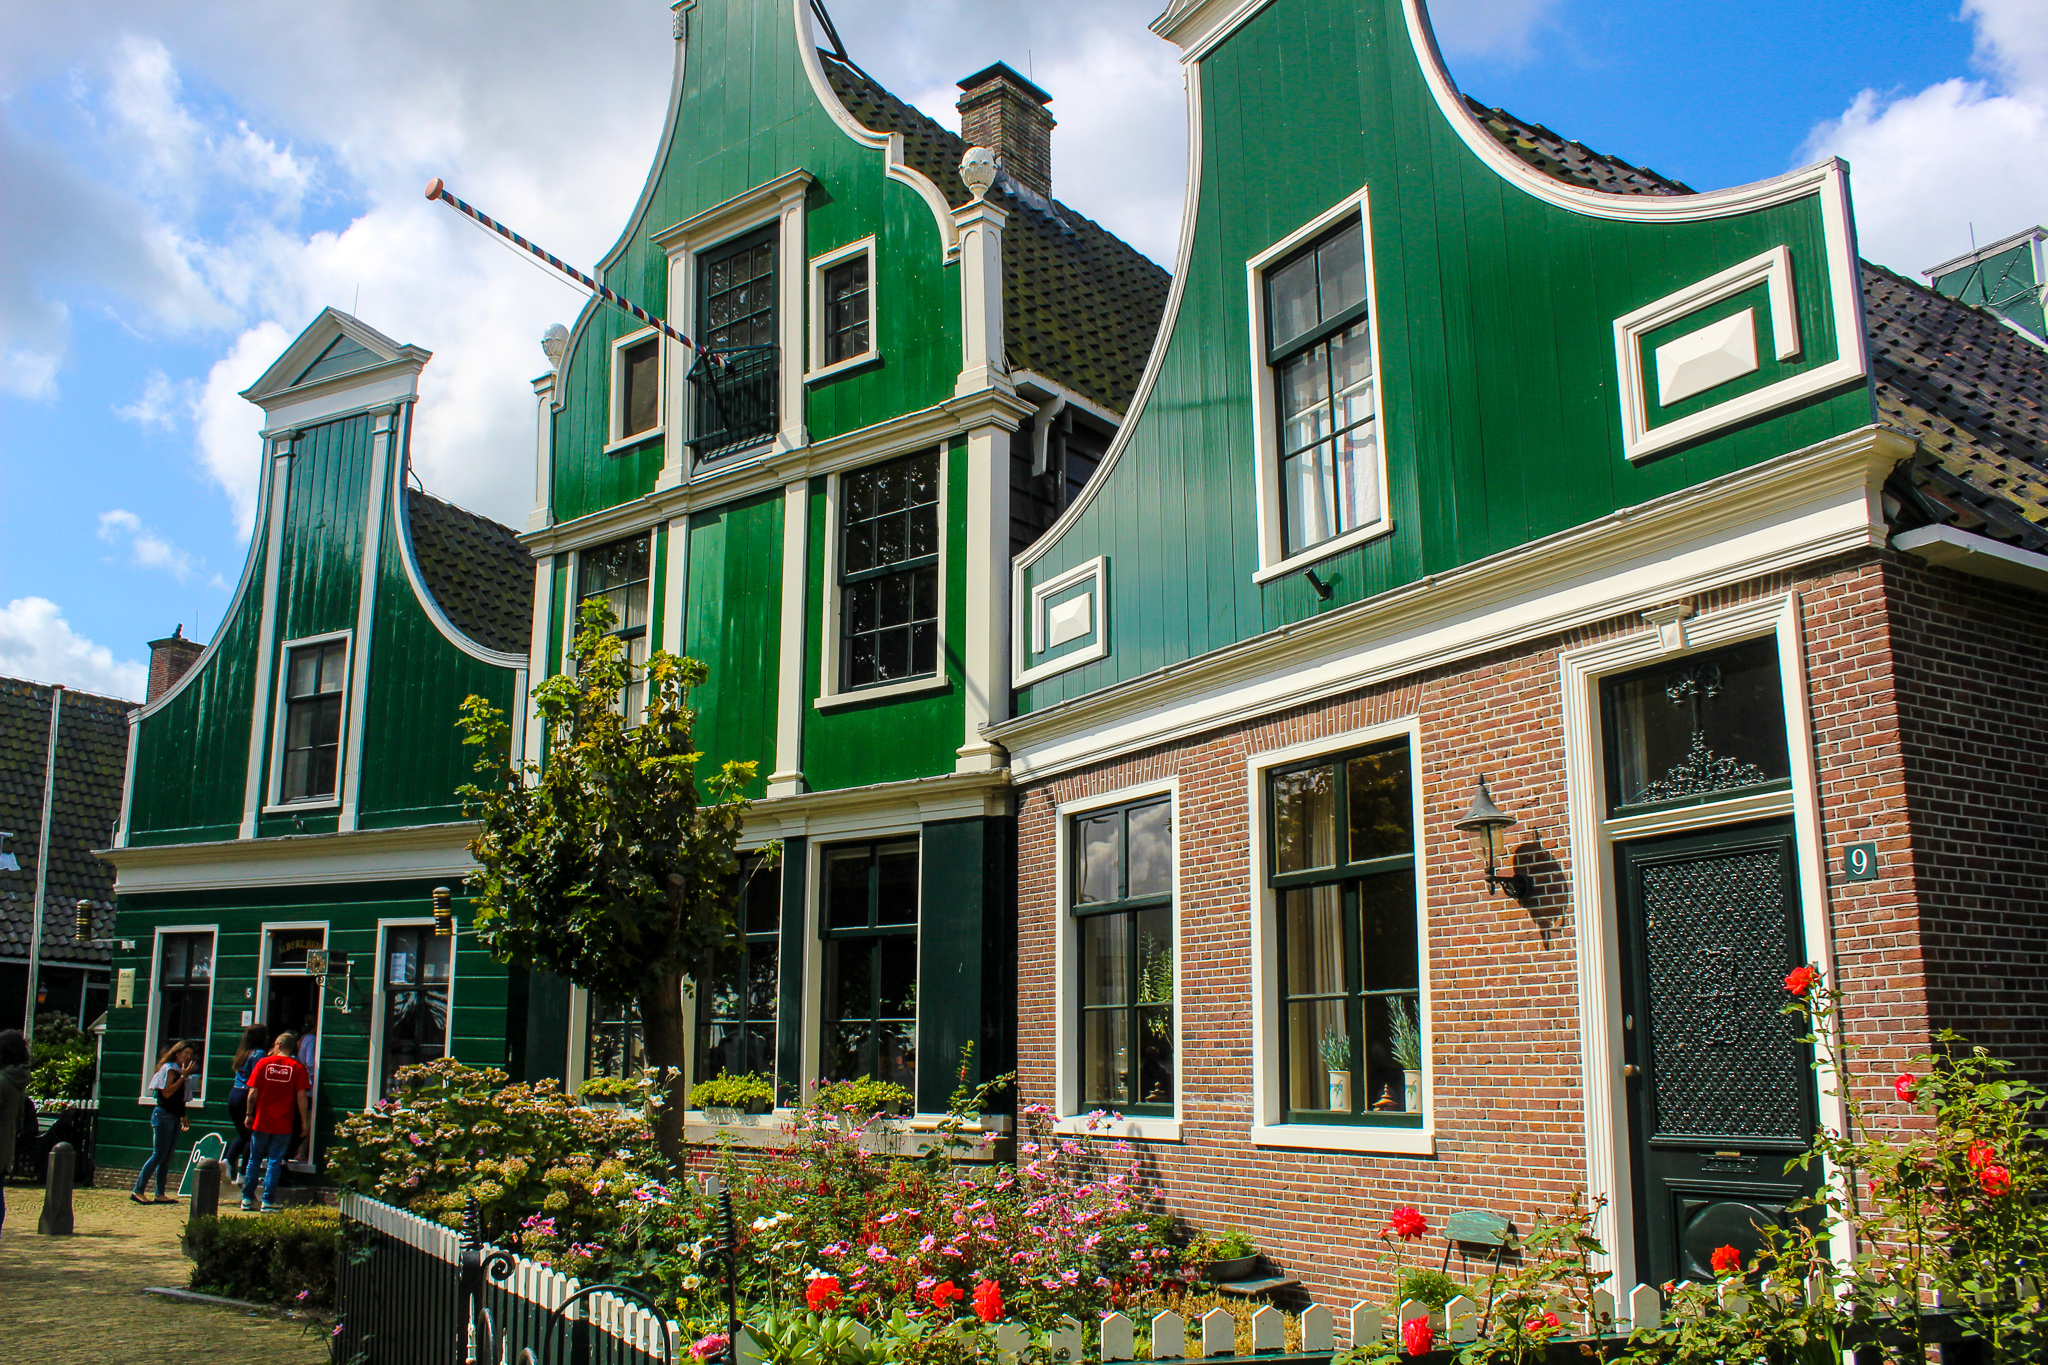 zaanse schans things to do: checking out green painted houses